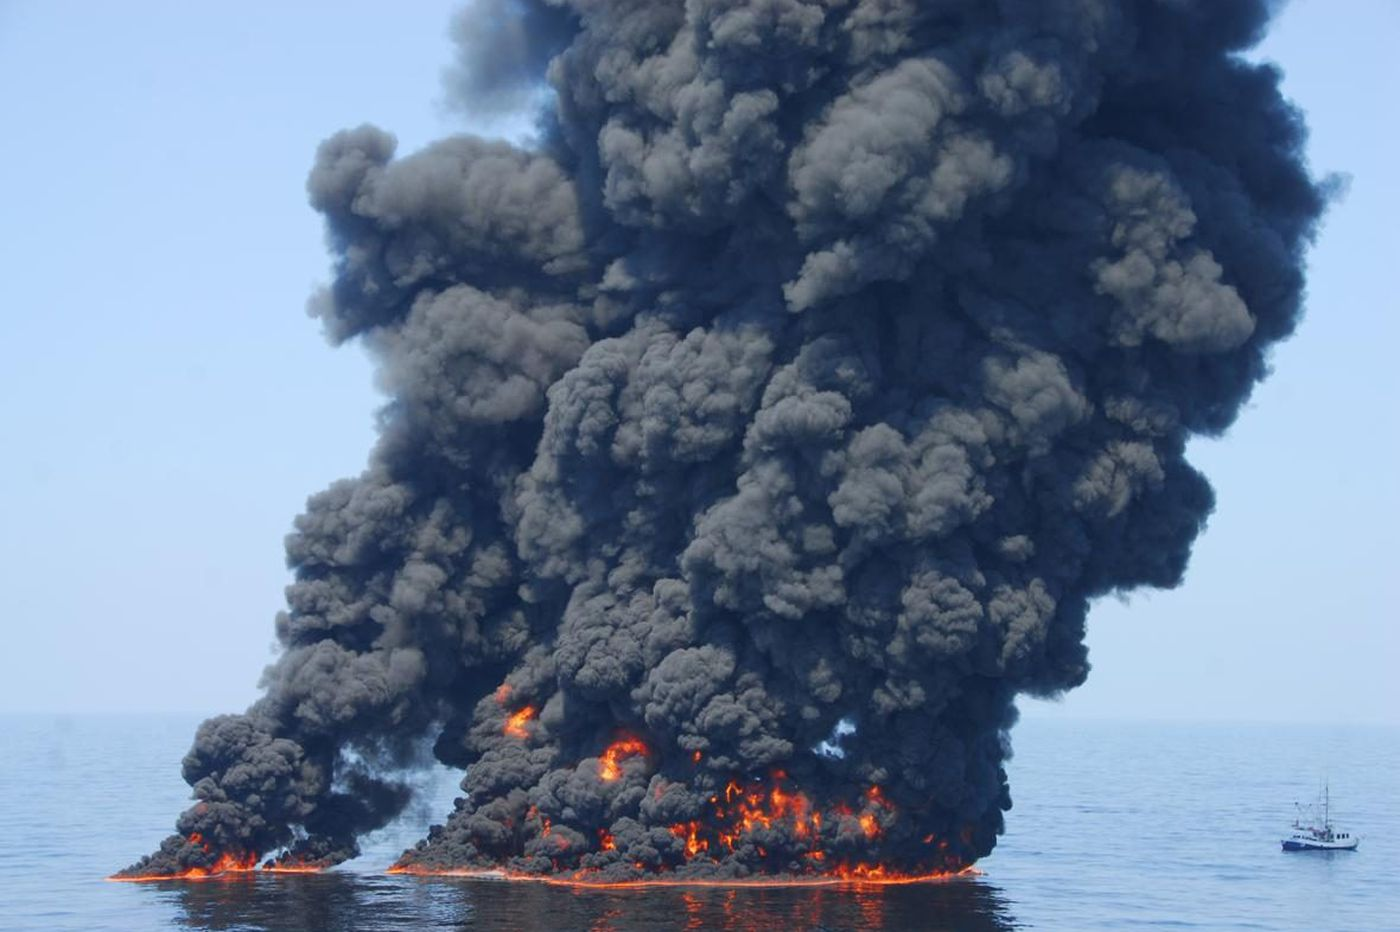 Stop offshore drilling by making New Jersey and Delaware ugly for oil | Editorial